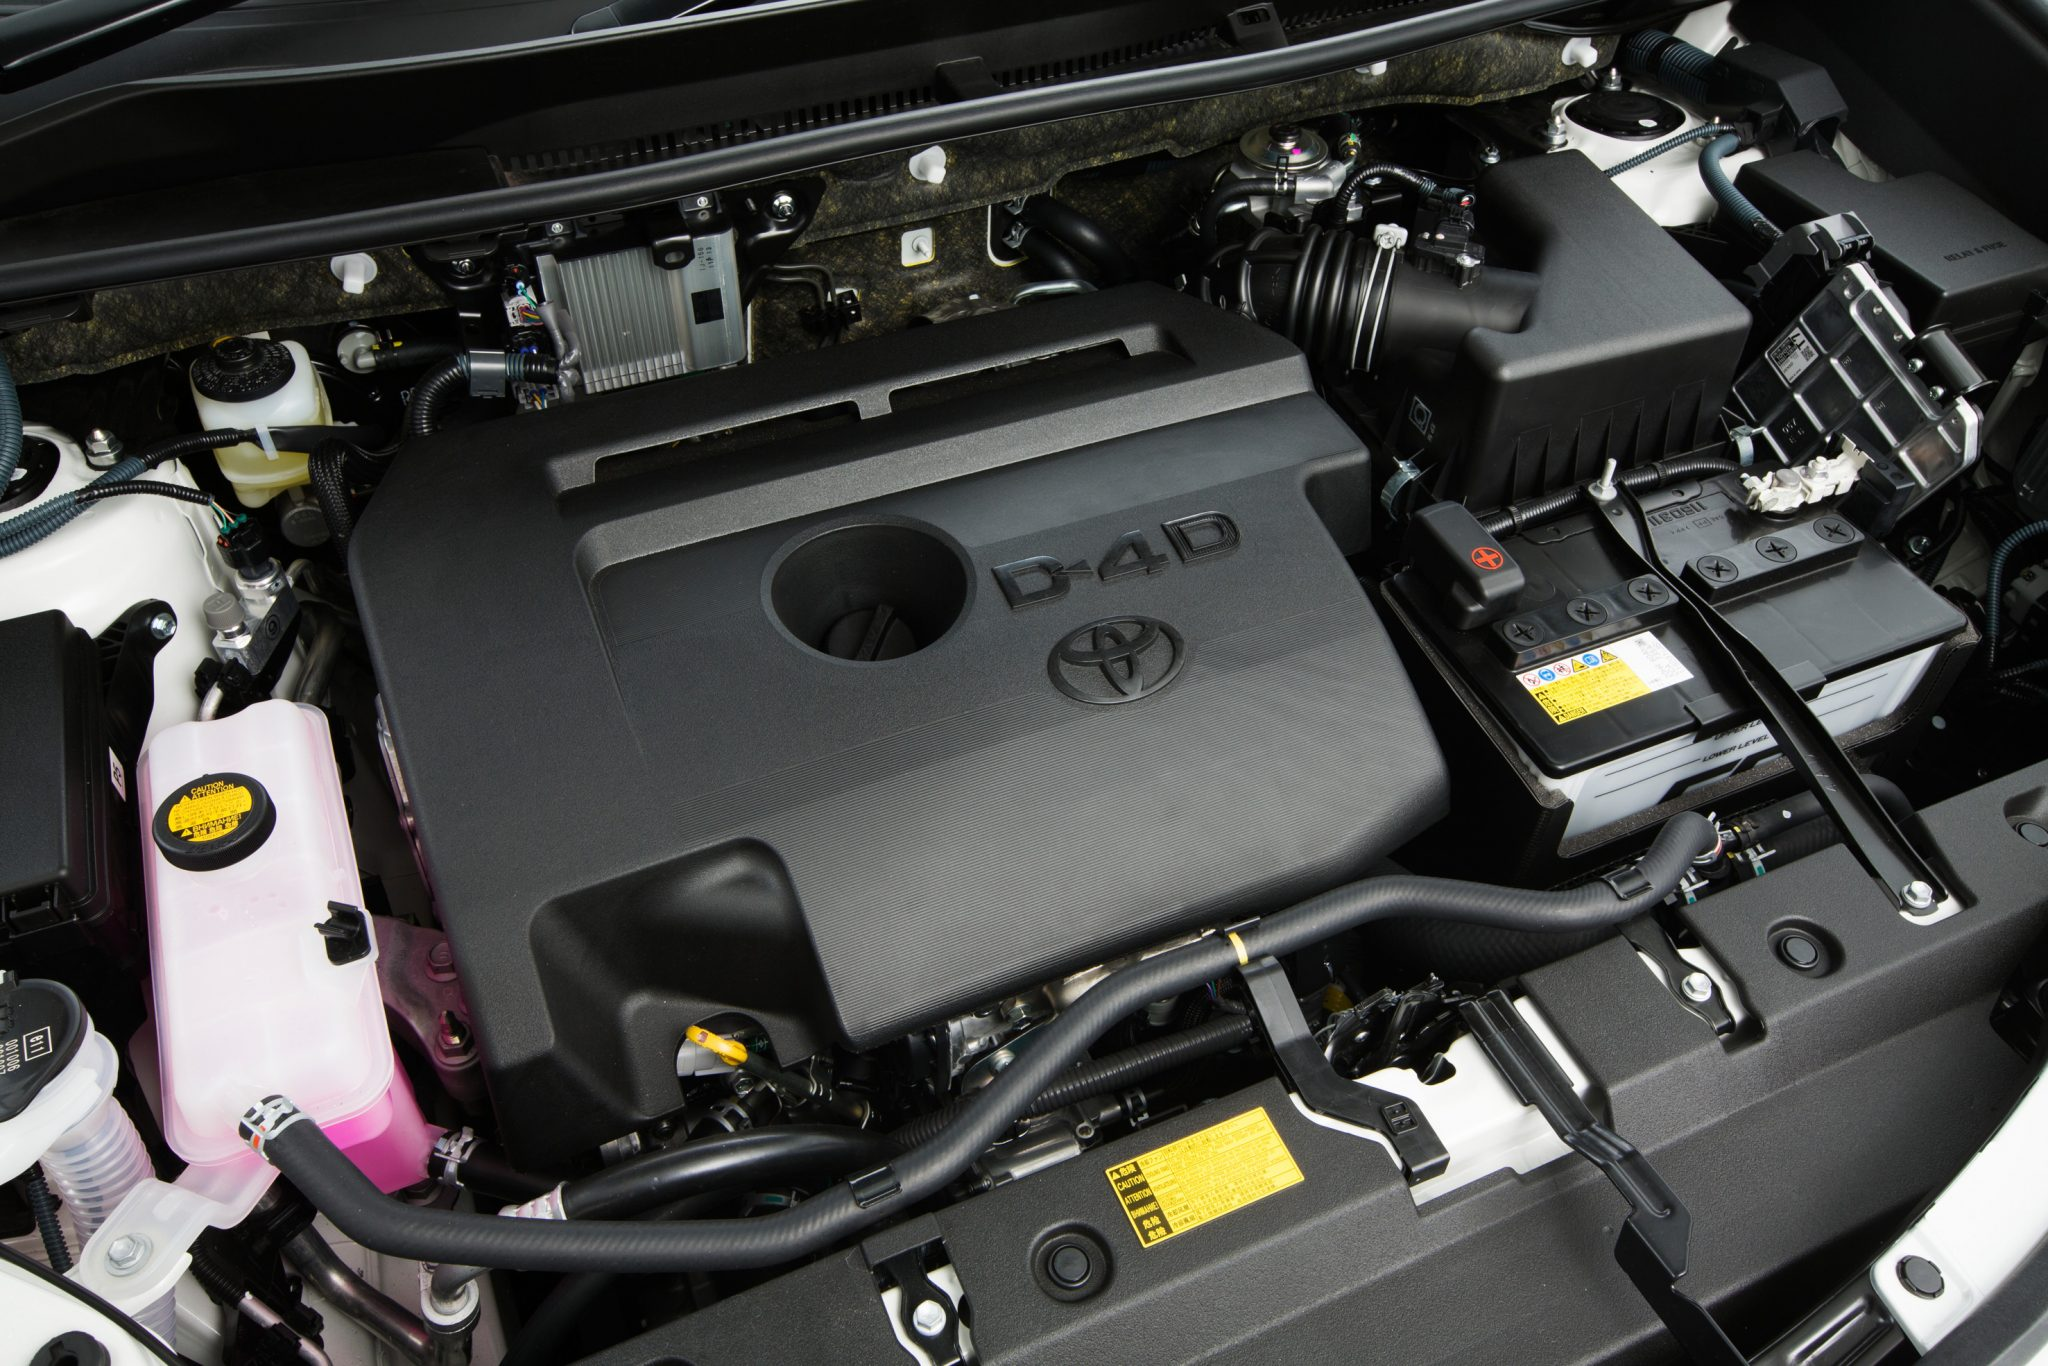 2013 Toyota Rav4 2 2 Litre Turbo Diesel Engine Forcegt Com